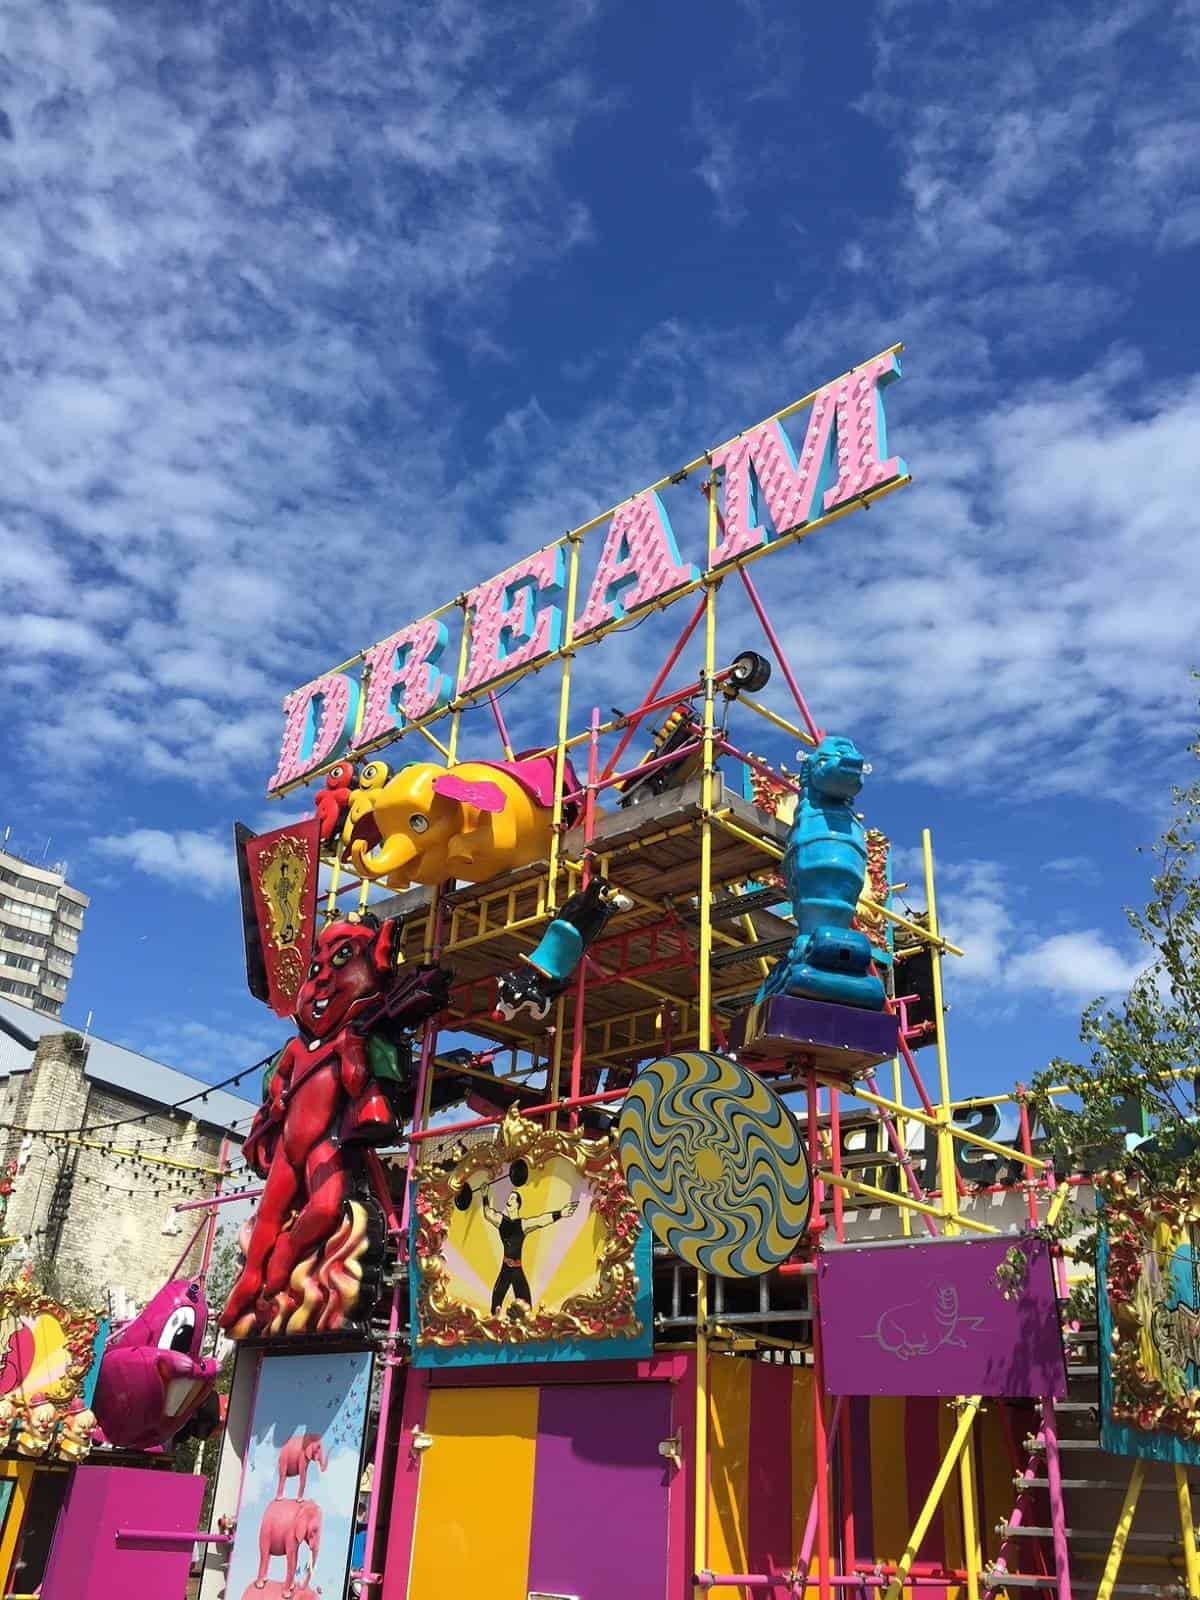 Dreamland in Margate